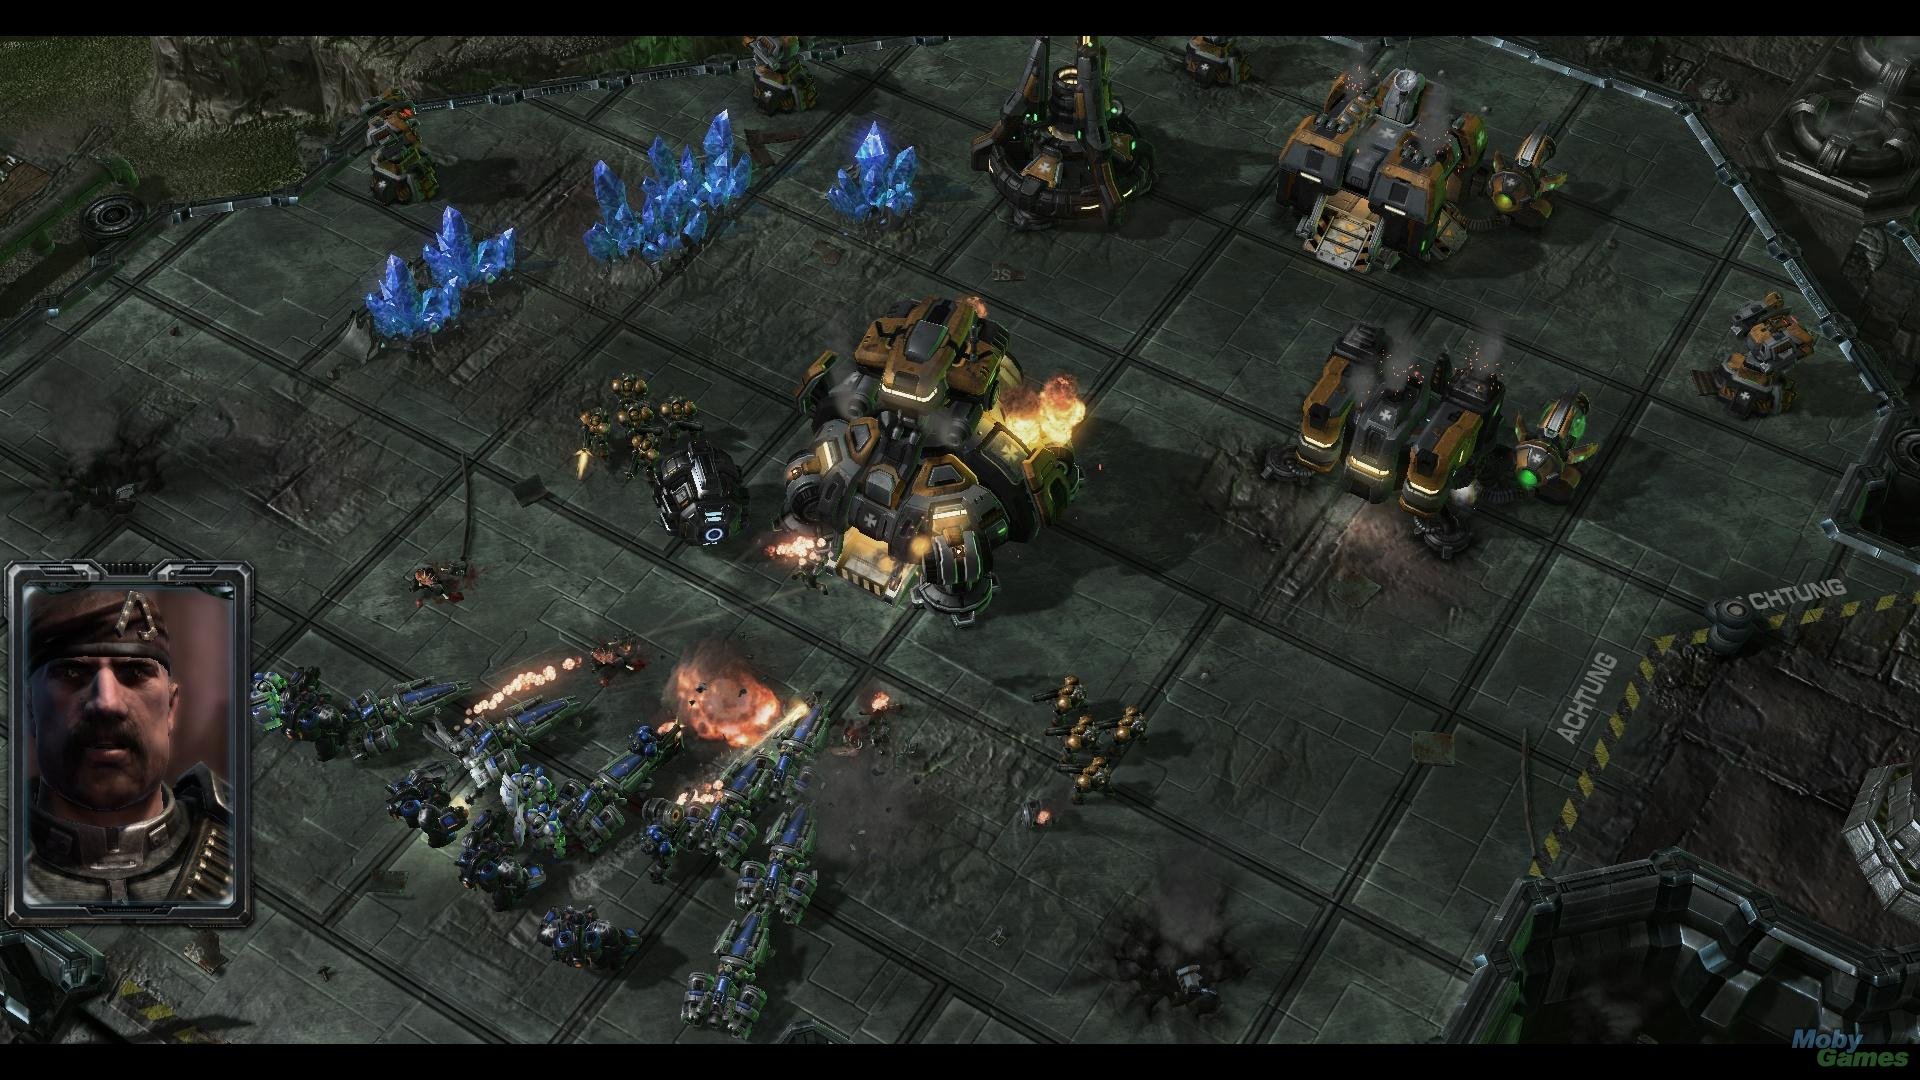 1920x1080 - Starcraft II: Wings Of Liberty HD Wallpapers 34